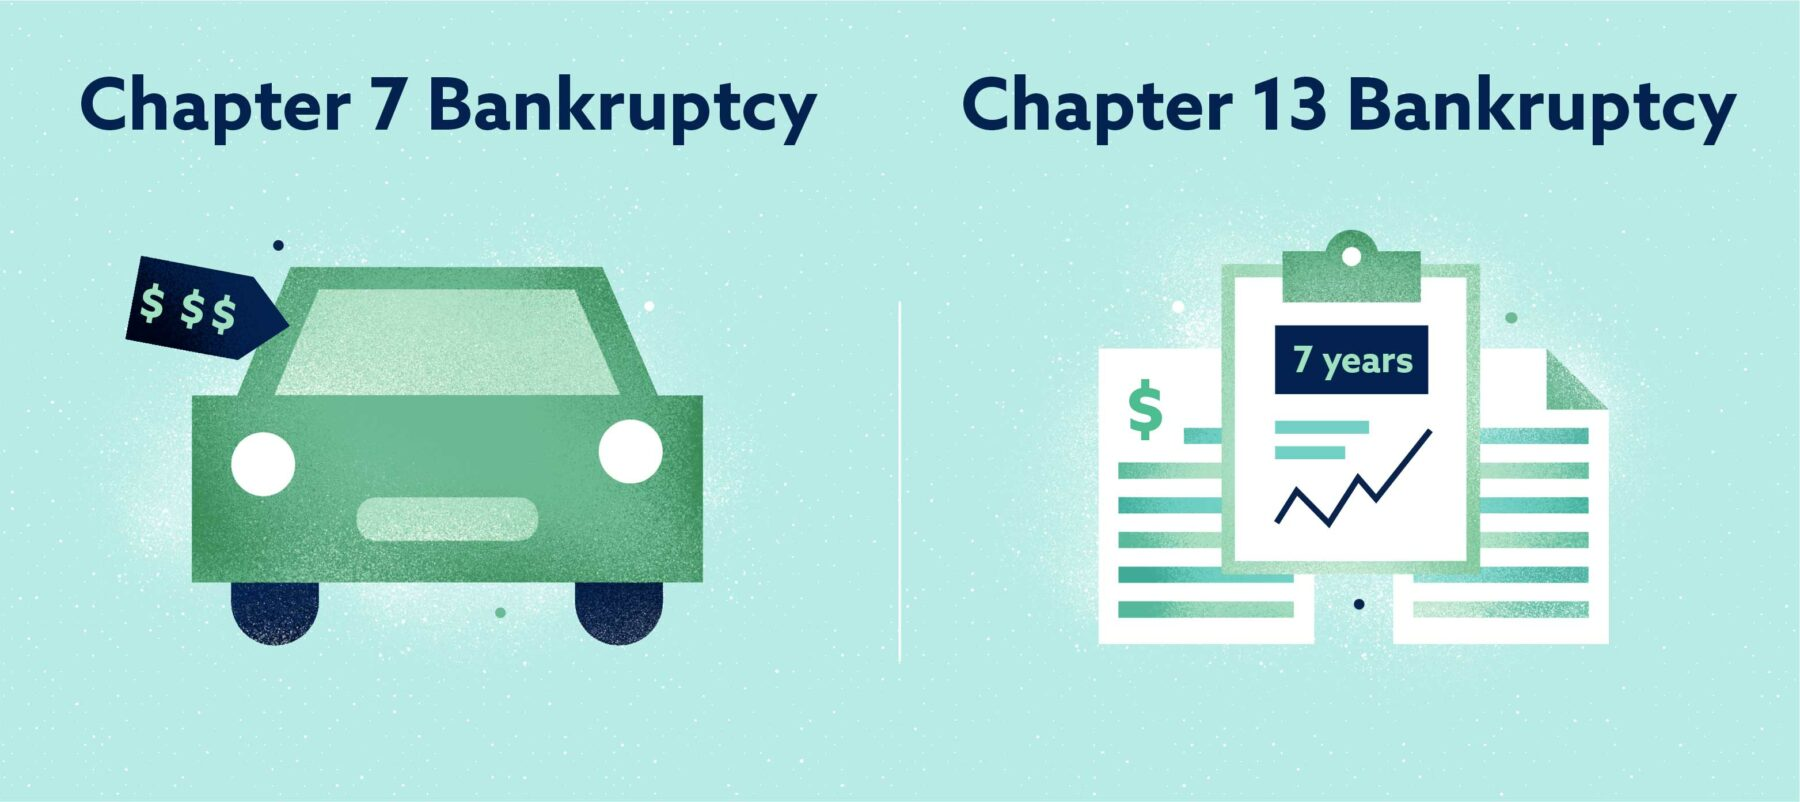 Chapter 7 Bankruptcy & Chapter 13 Bankruptcy Image